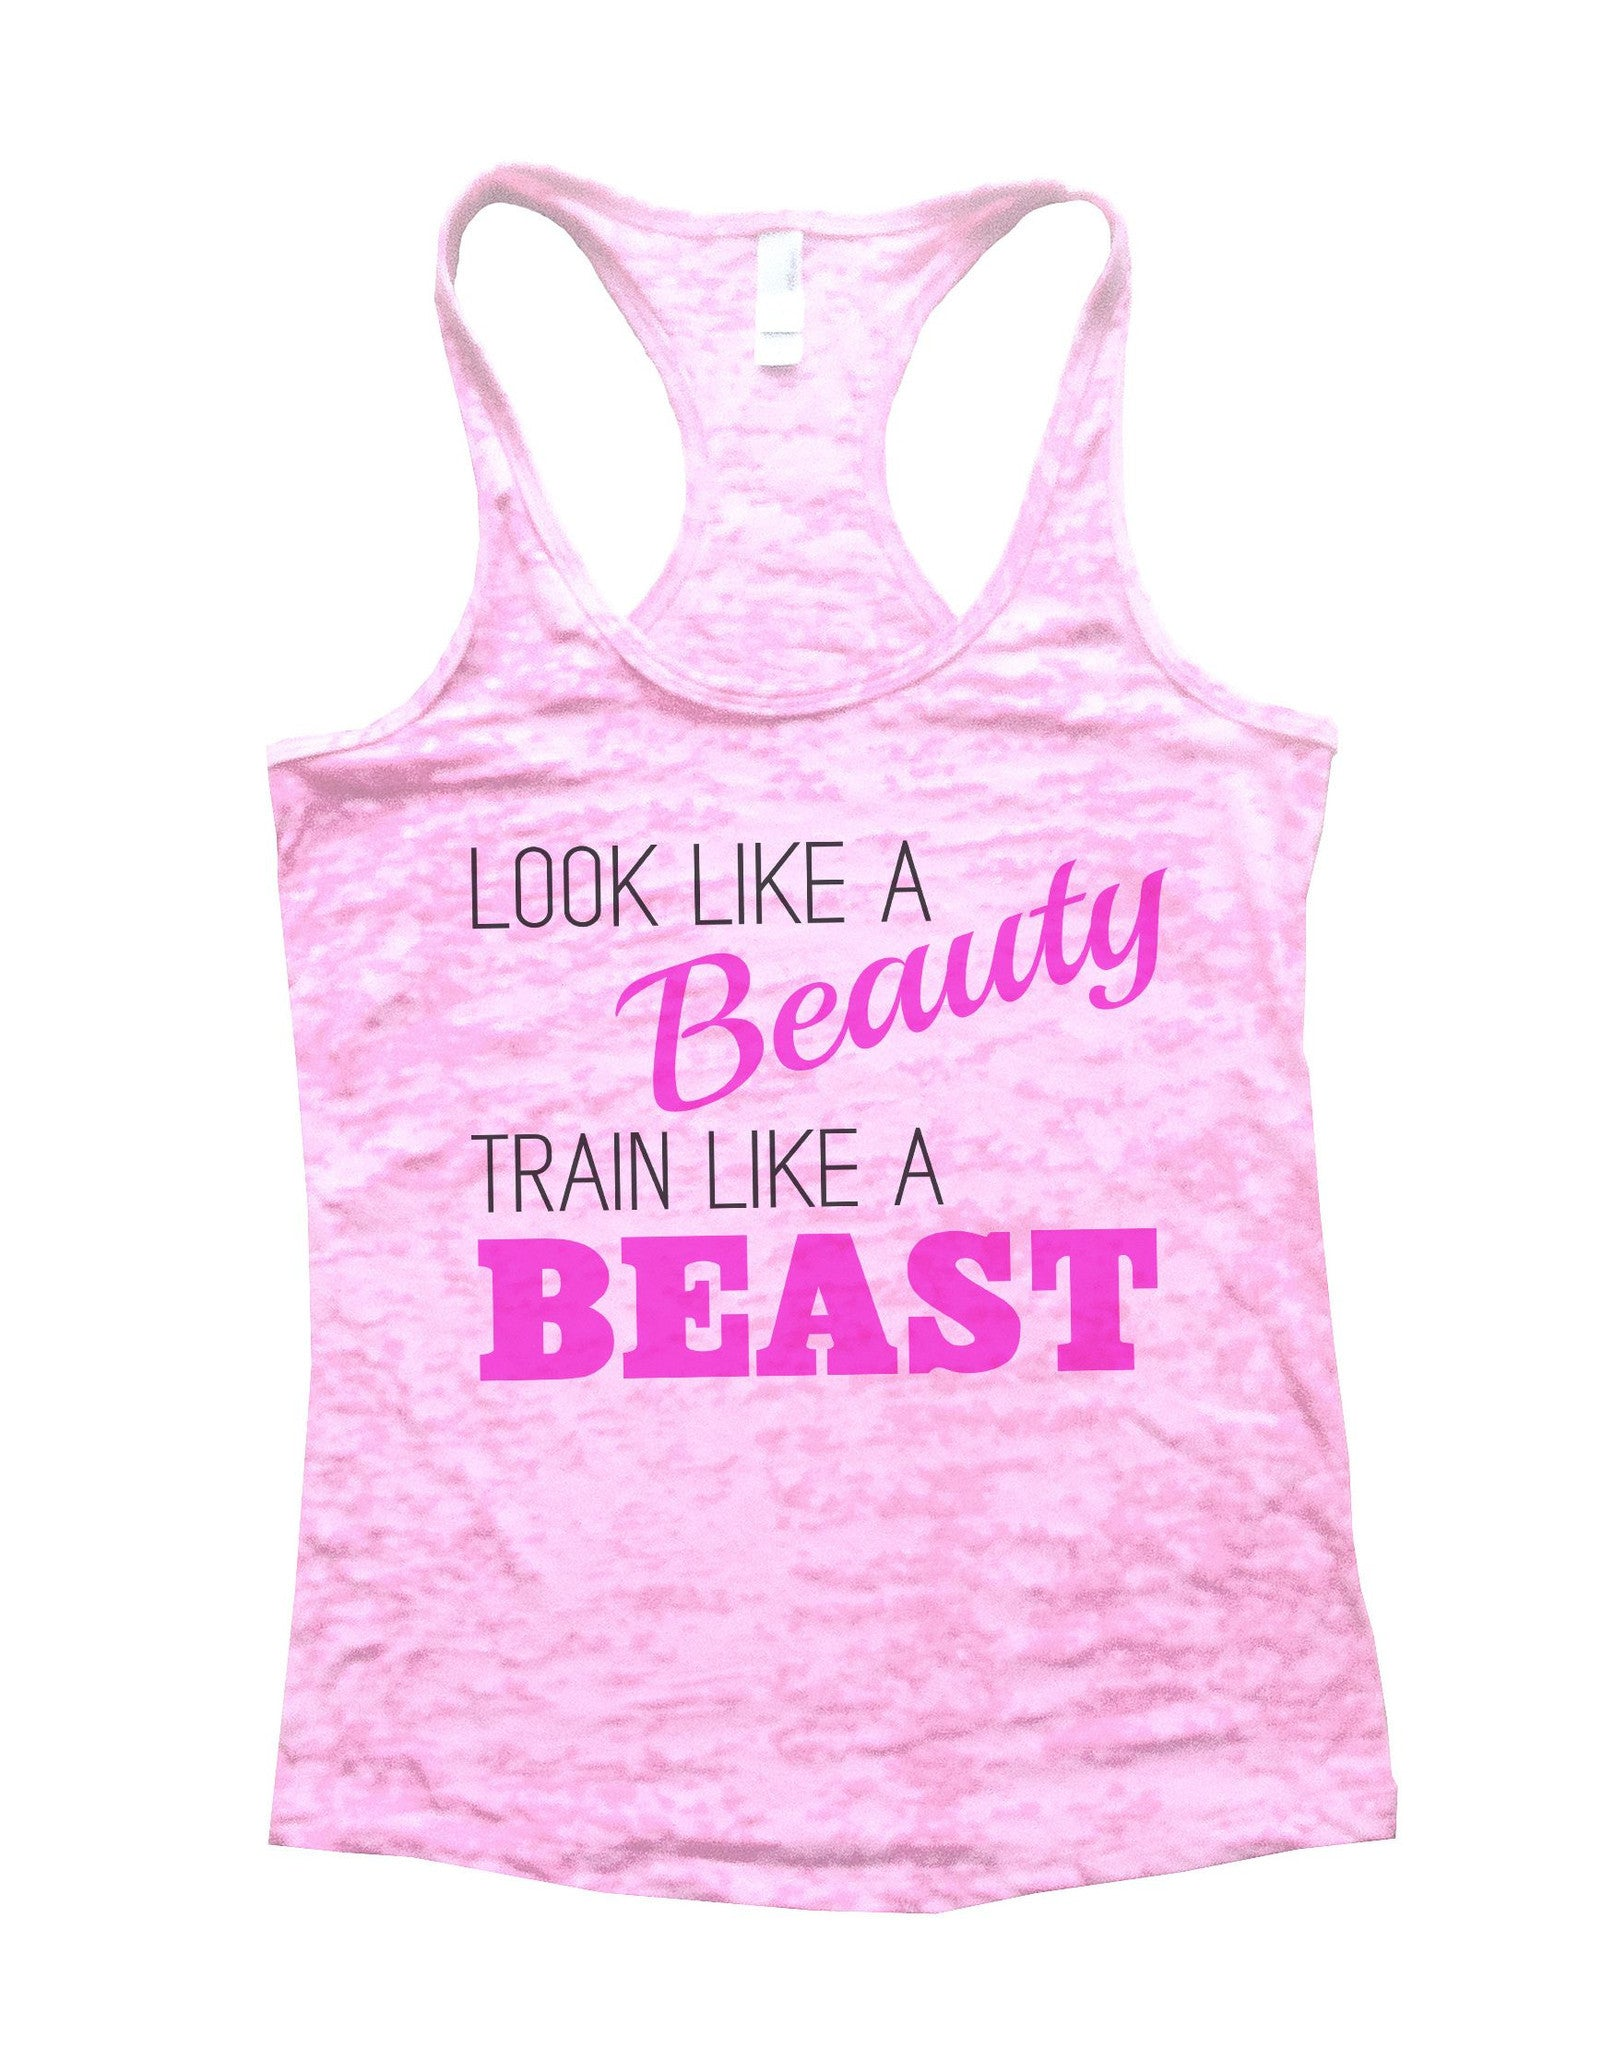 Look Like A Beauty Train Like A Beast Burnout Tank Top By BurnoutTankTops.com - 751 - Funny Shirts Tank Tops Burnouts and Triblends  - 2